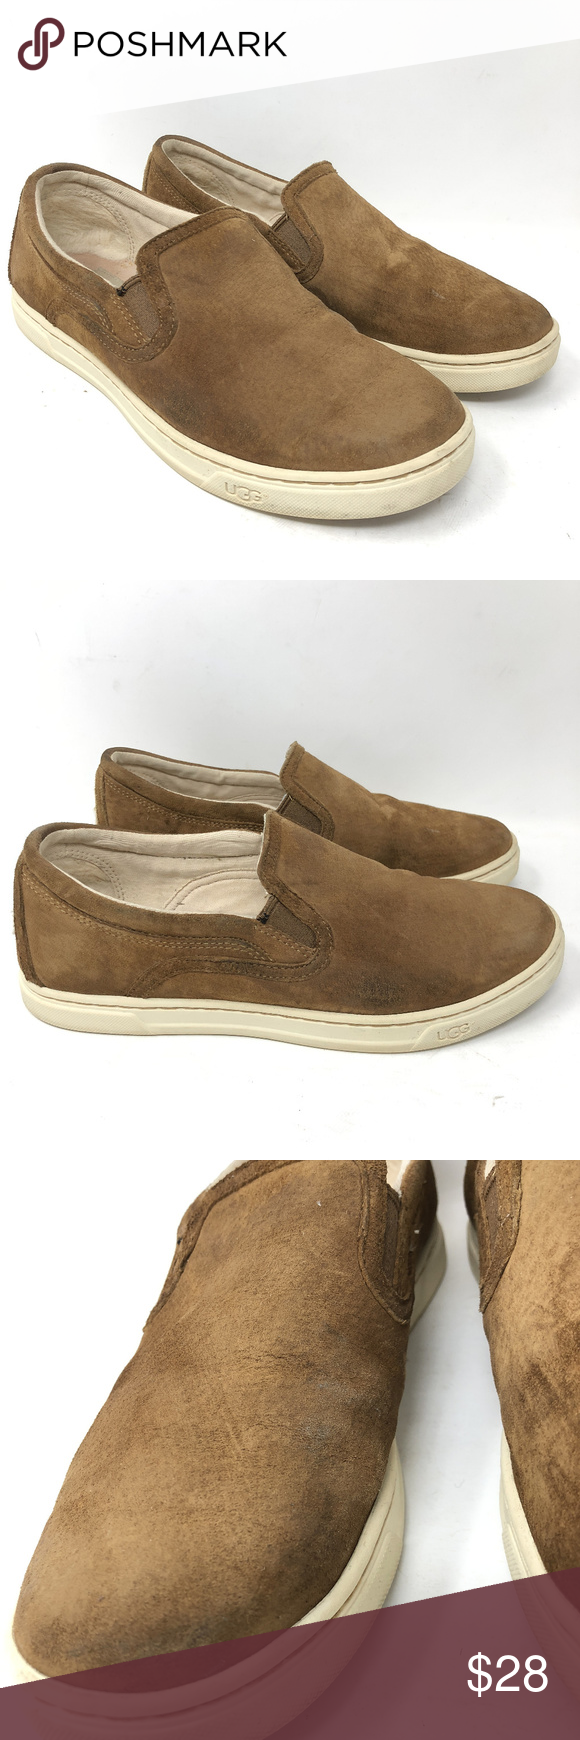 b90b2f63a2e Ugg Fierce Slip On Sneakers Chestnut Suede Loafers Ugg Australia ...